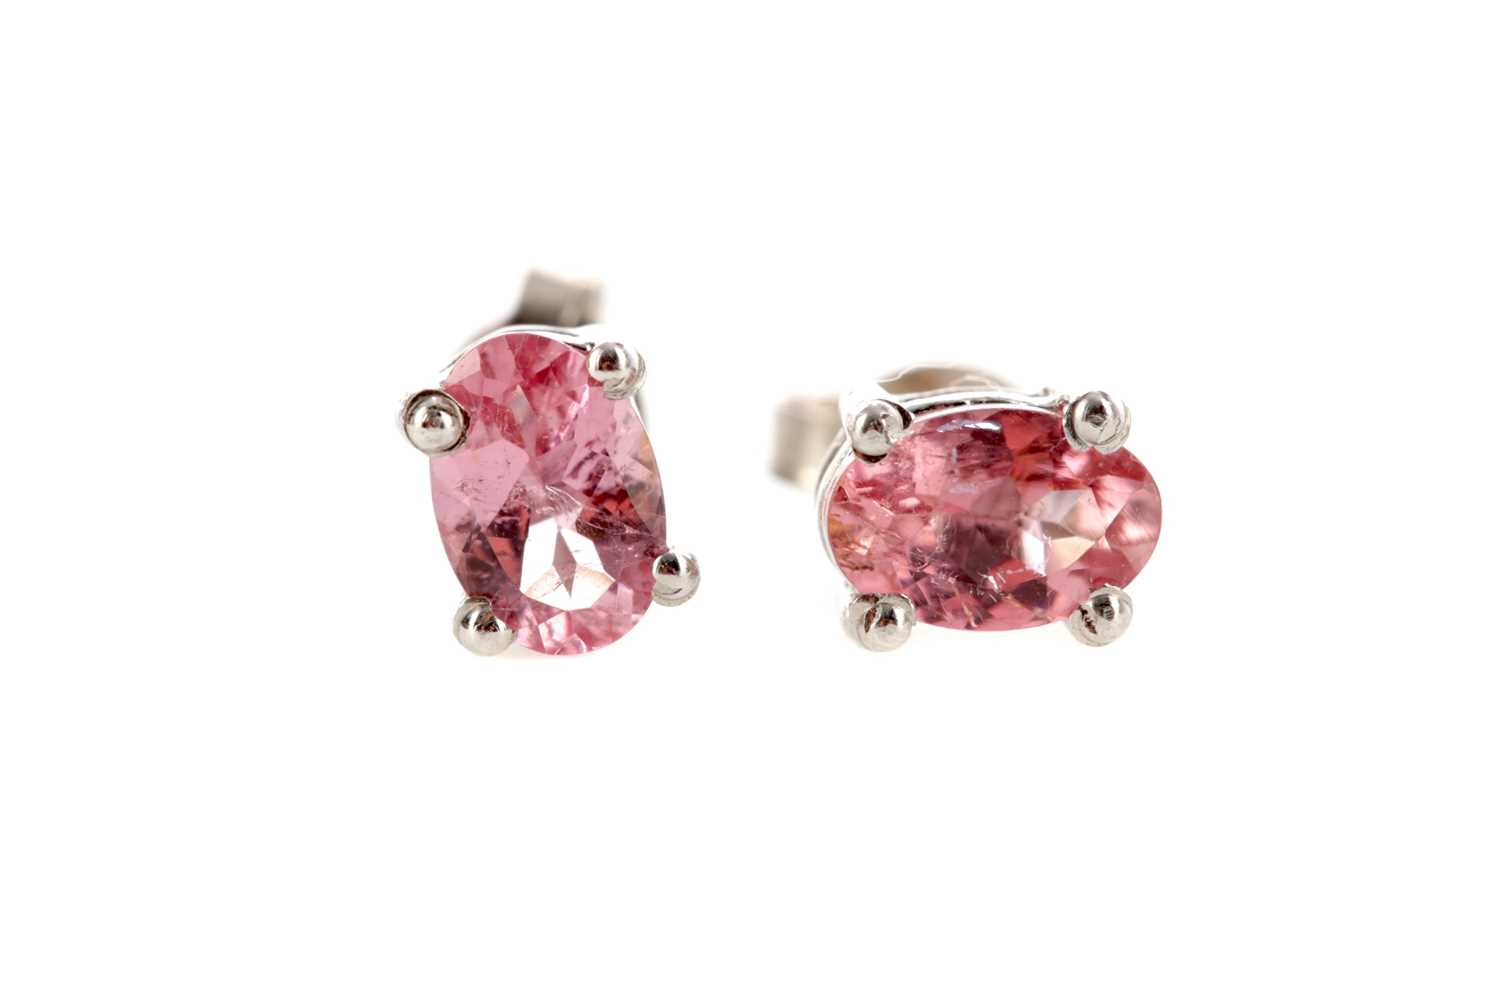 Lot 453 - A PAIR OF PINK TOURMALINE STUD EARRINGS